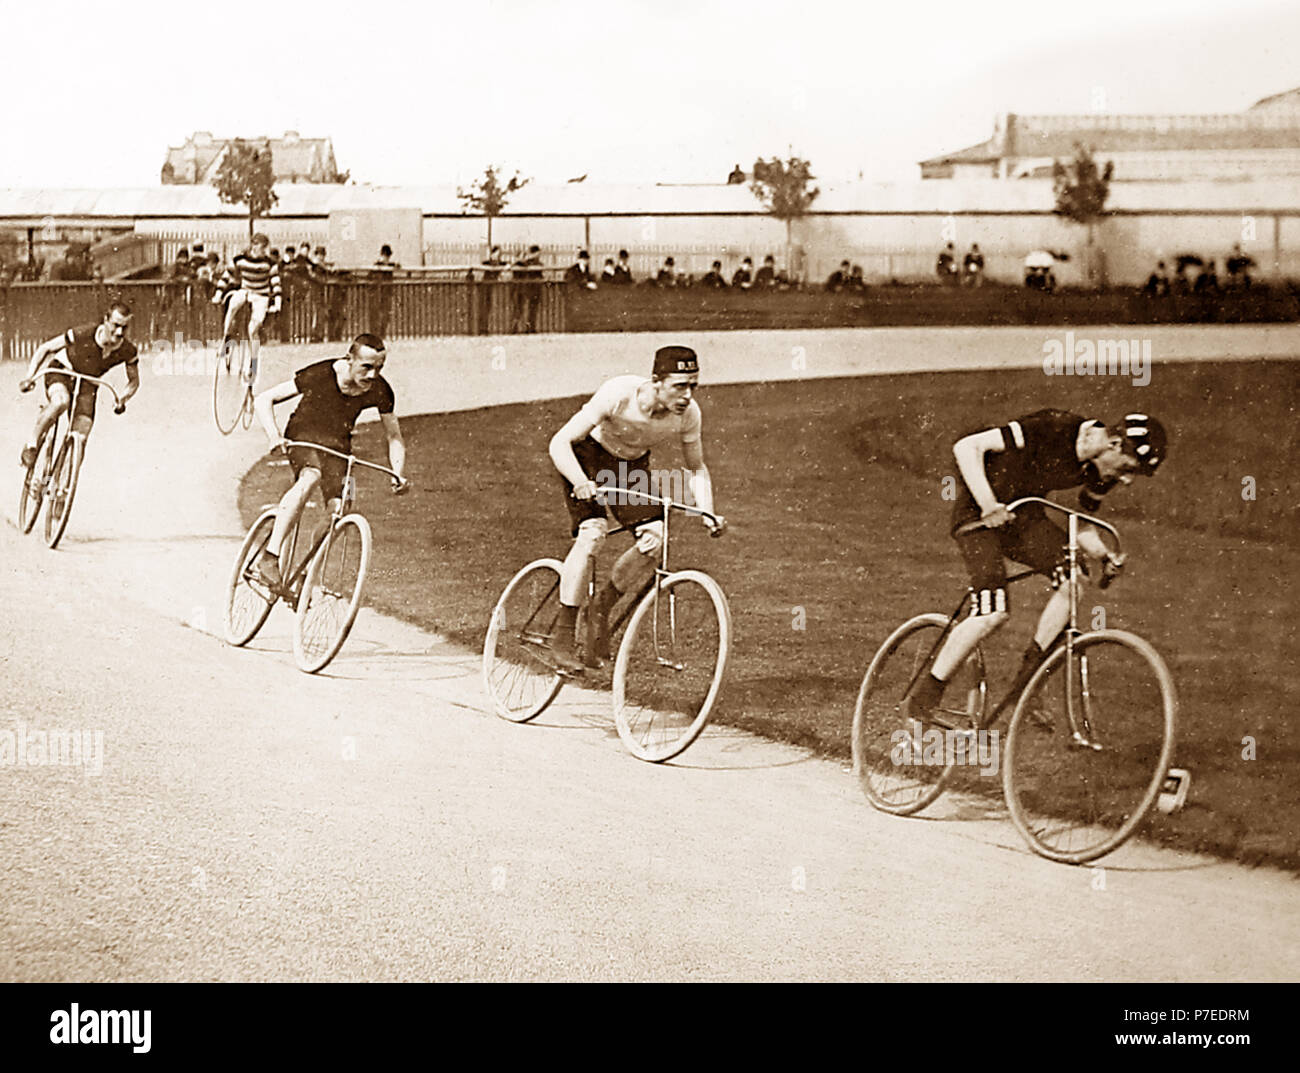 Two mile challenge cycle race, early 1900s - Stock Image